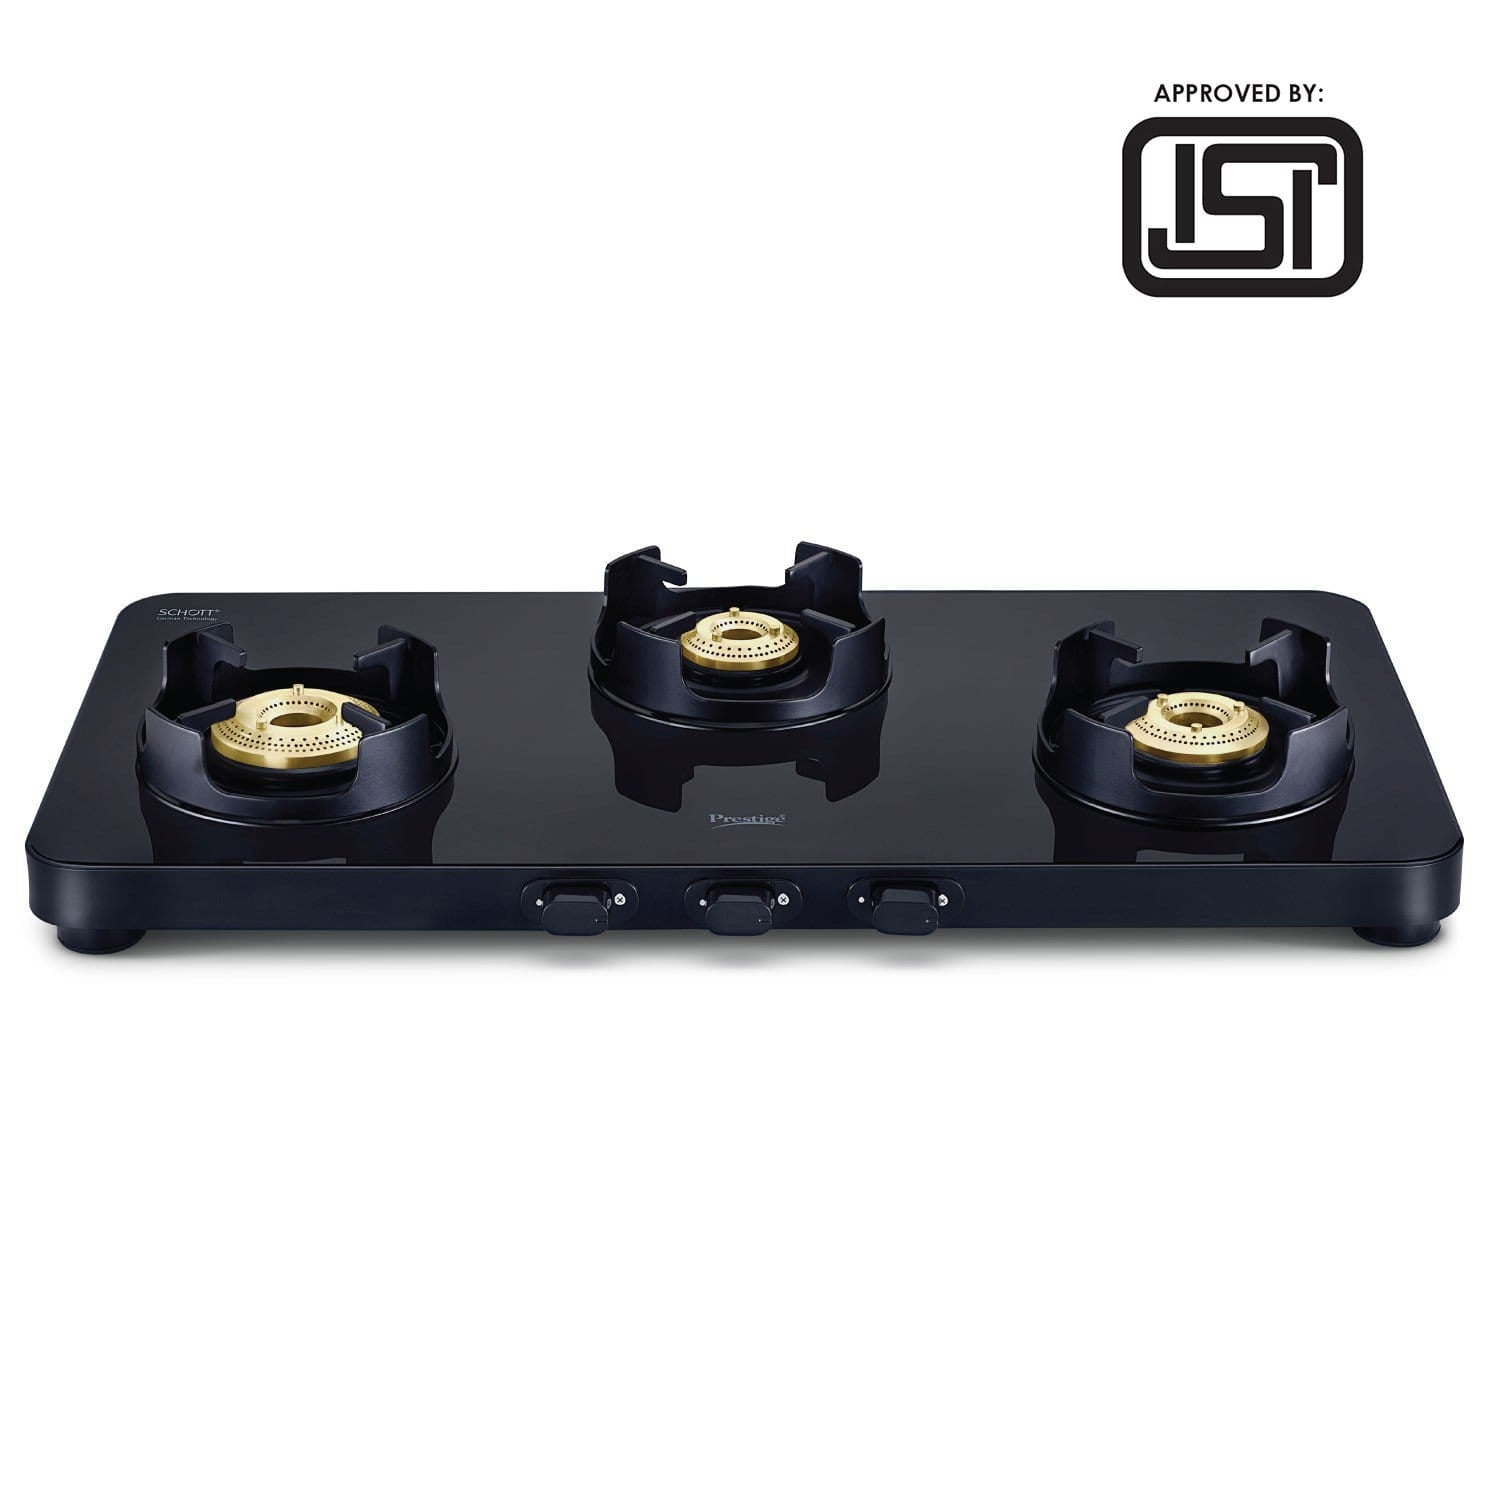 Prestige Edge 3 Burner Glass Gas Stove PEBS 03, Black (ISI Approved) with SCHOTT Glass - KITCHEN MART